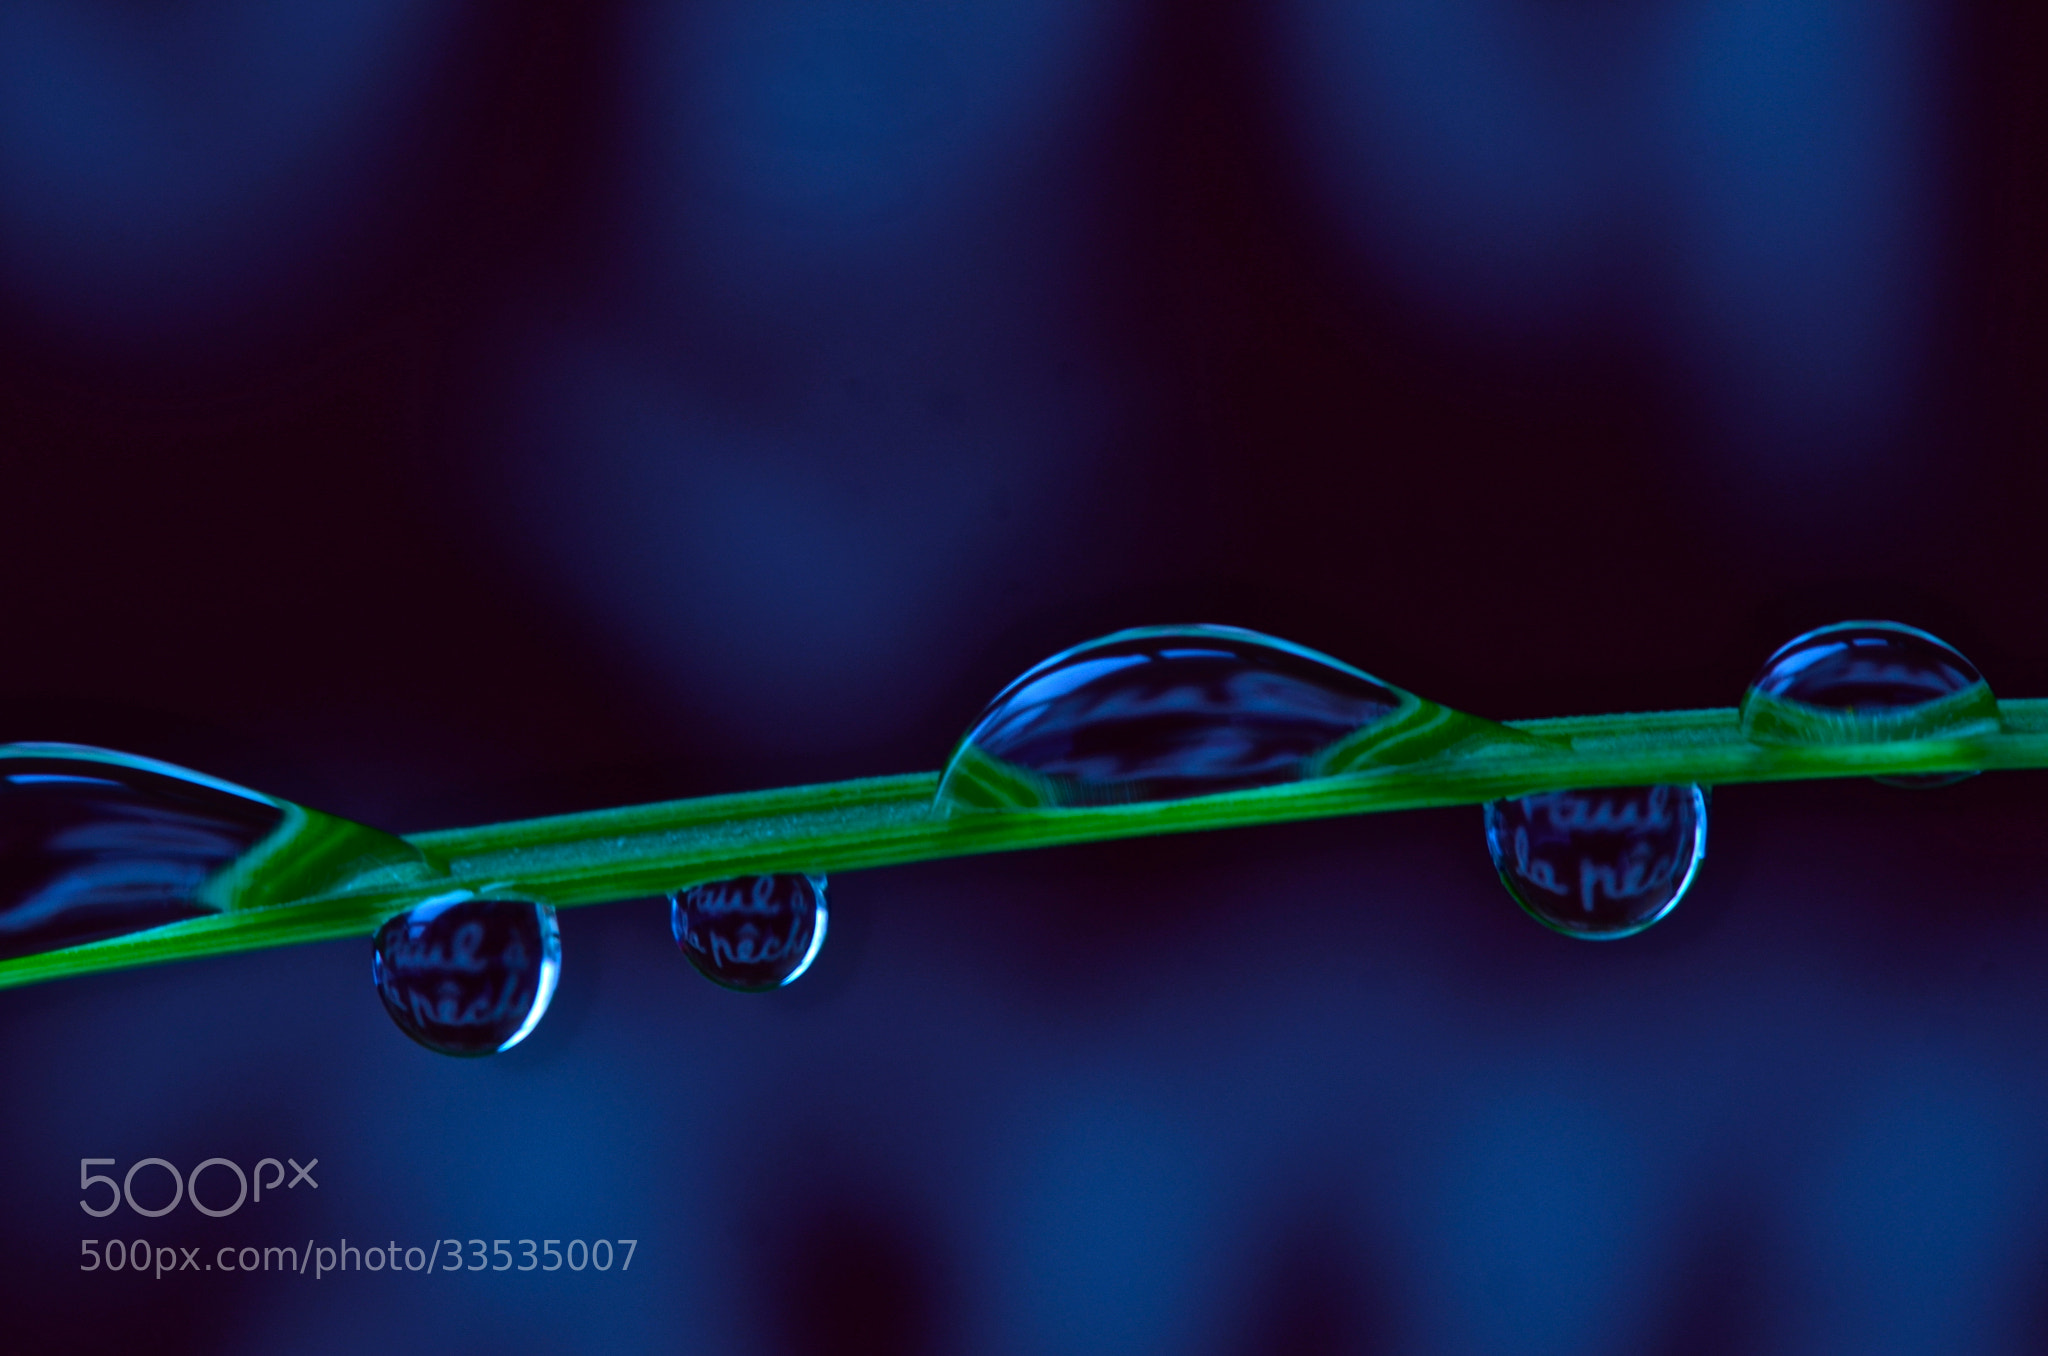 Photograph Macro water droplets by Jinny Montpetit on 500px